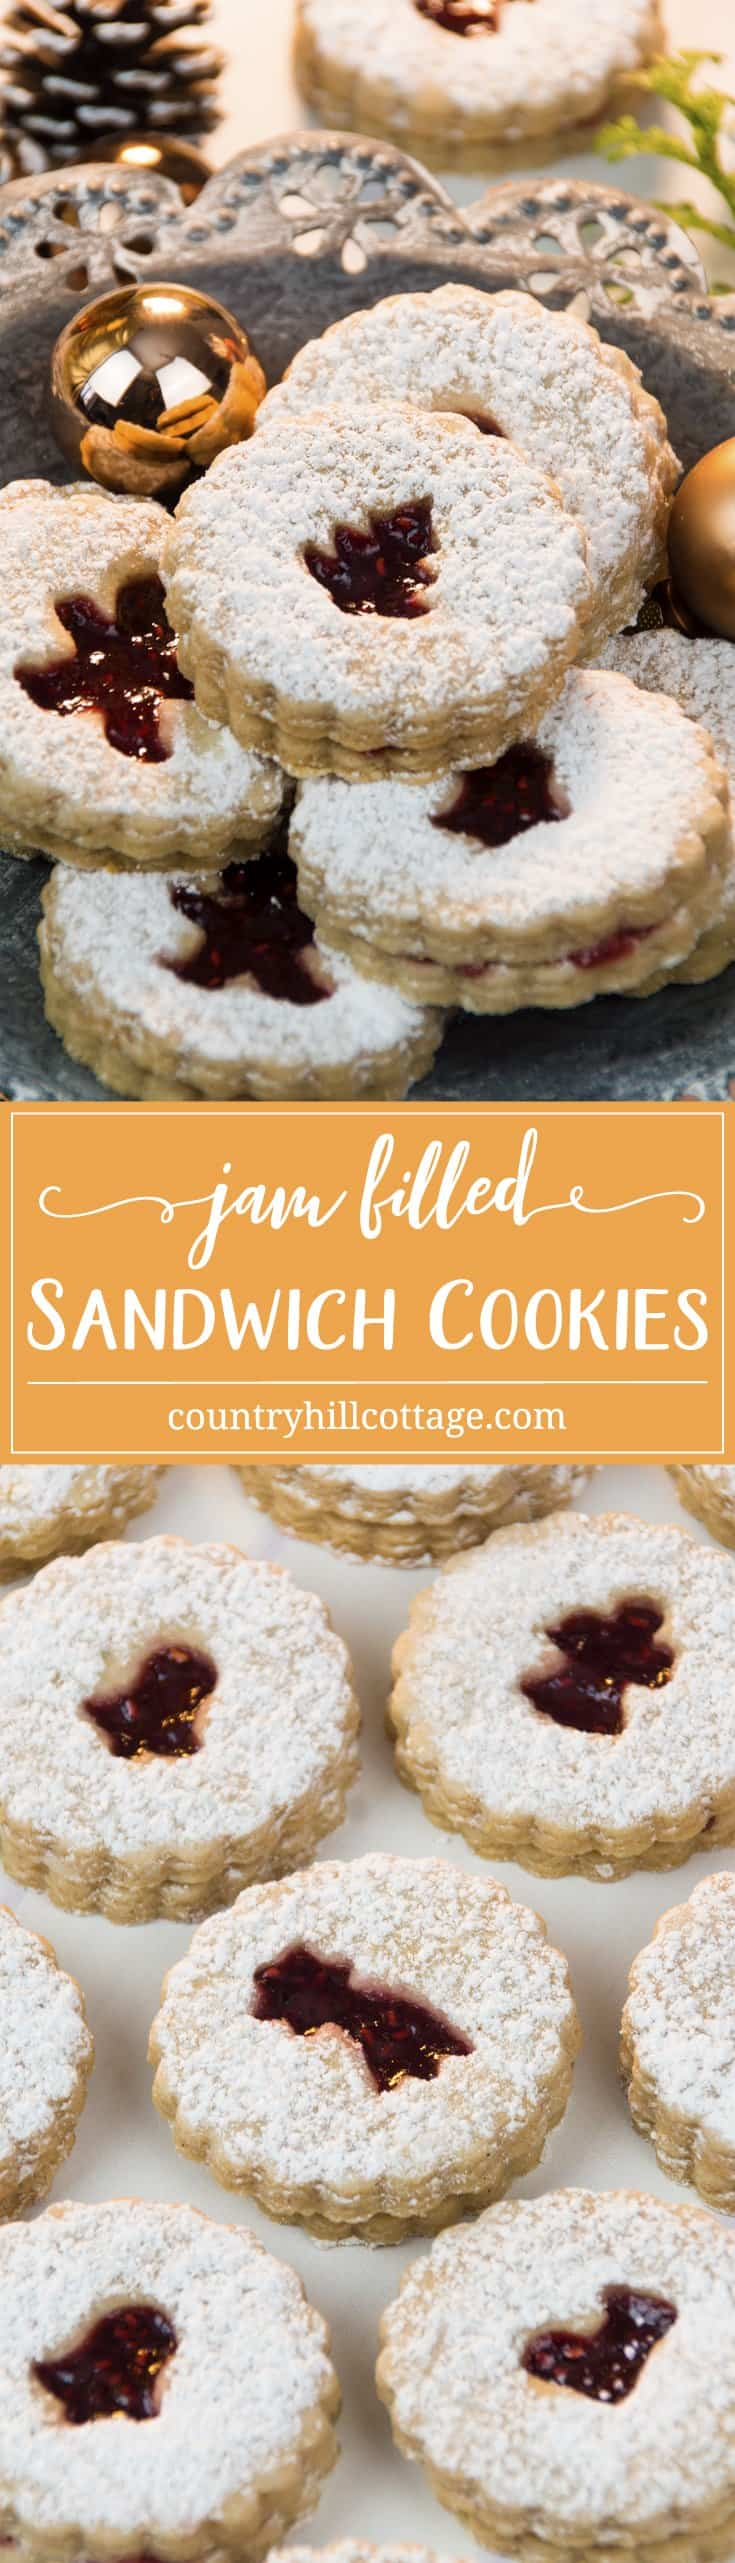 These jam-filled sandwich cookies are made with delicious brown sugar and spice cookie dough, your favourite jam, and a light dusting of icing sugar. They taste just like Christmas and are the perfect treat to serve at the holidays! #Christmas #cookies #Christmascookies #recipe | countryhillcottage.com